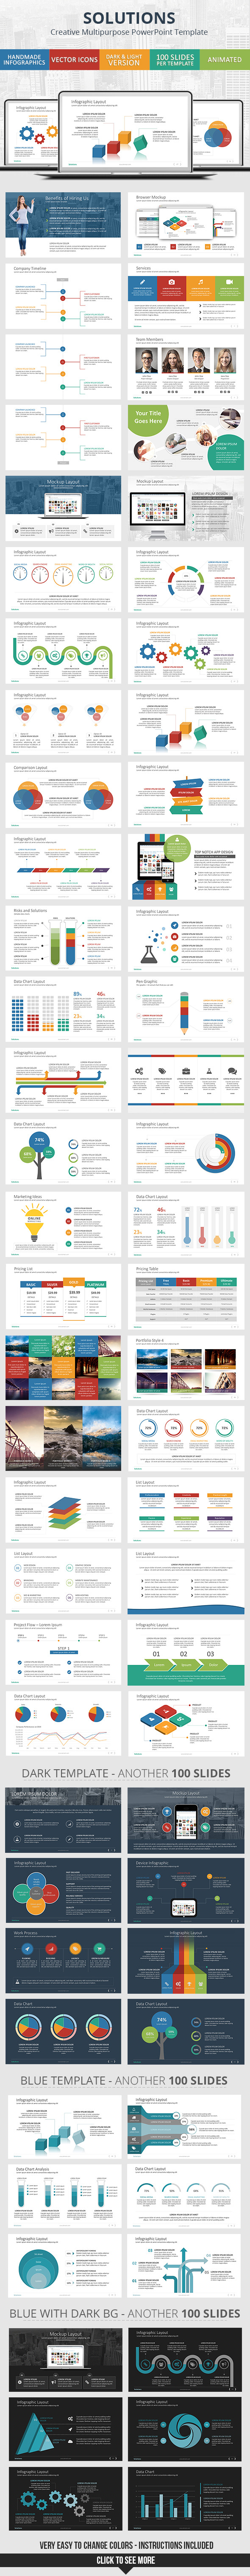 solutions - powerpoint presentation templategraphicadi, Powerpoint templates